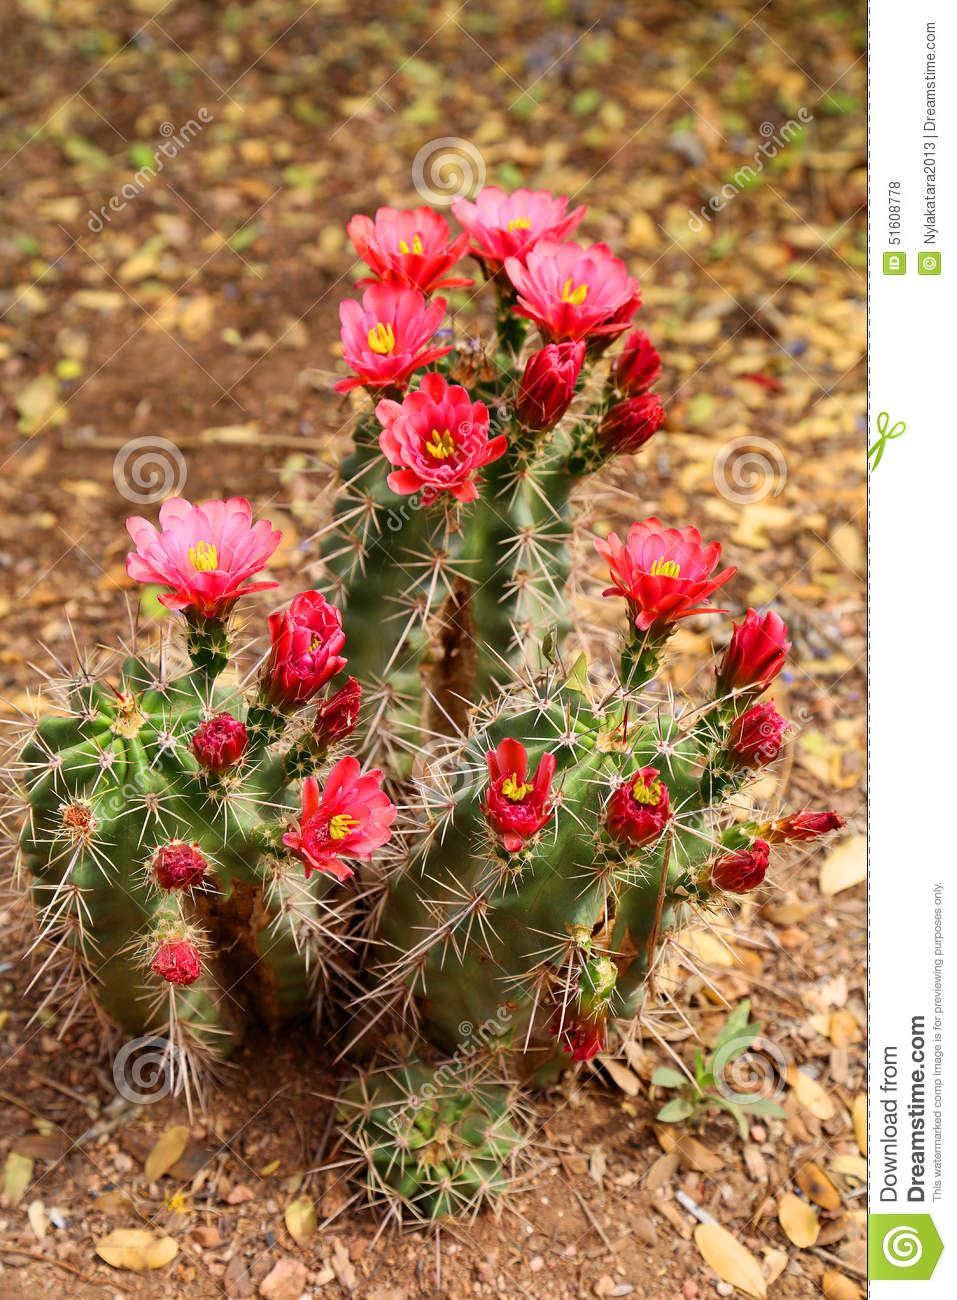 Blooming cactus stock photo image of drought green 51608778 download blooming cactus stock photo image of drought green 51608778 mightylinksfo